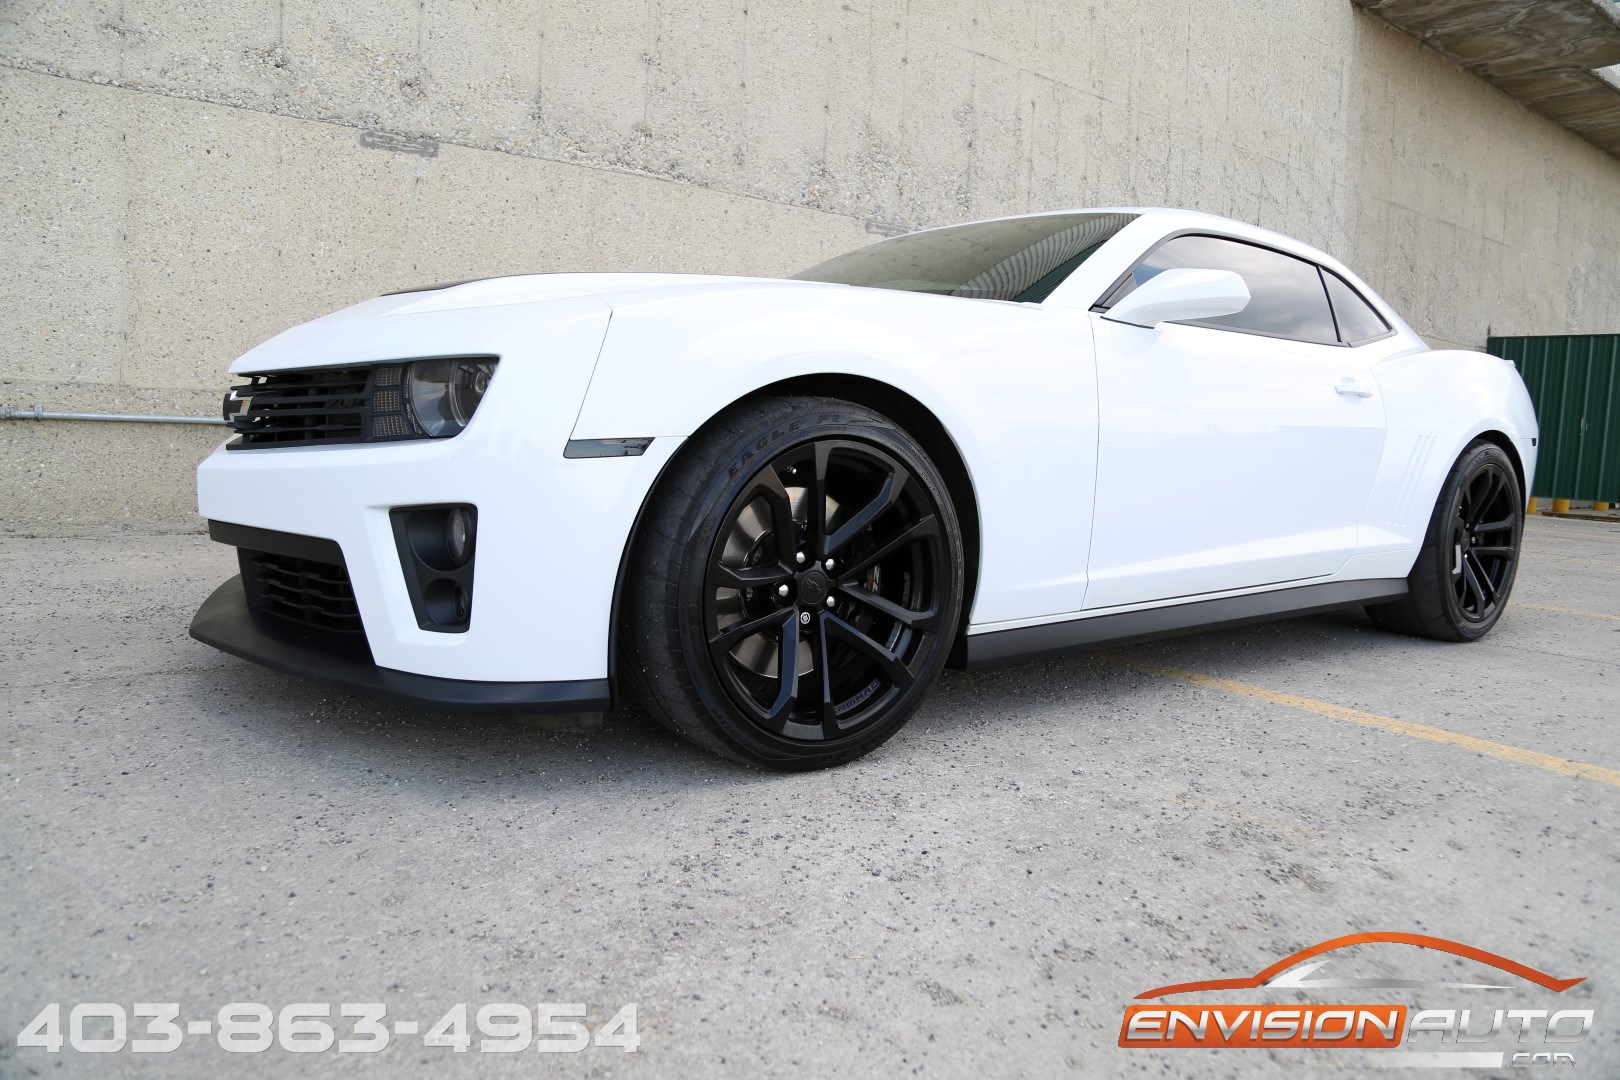 2014 Chevrolet Camaro Zl1 Recaro Navi Blacked Out